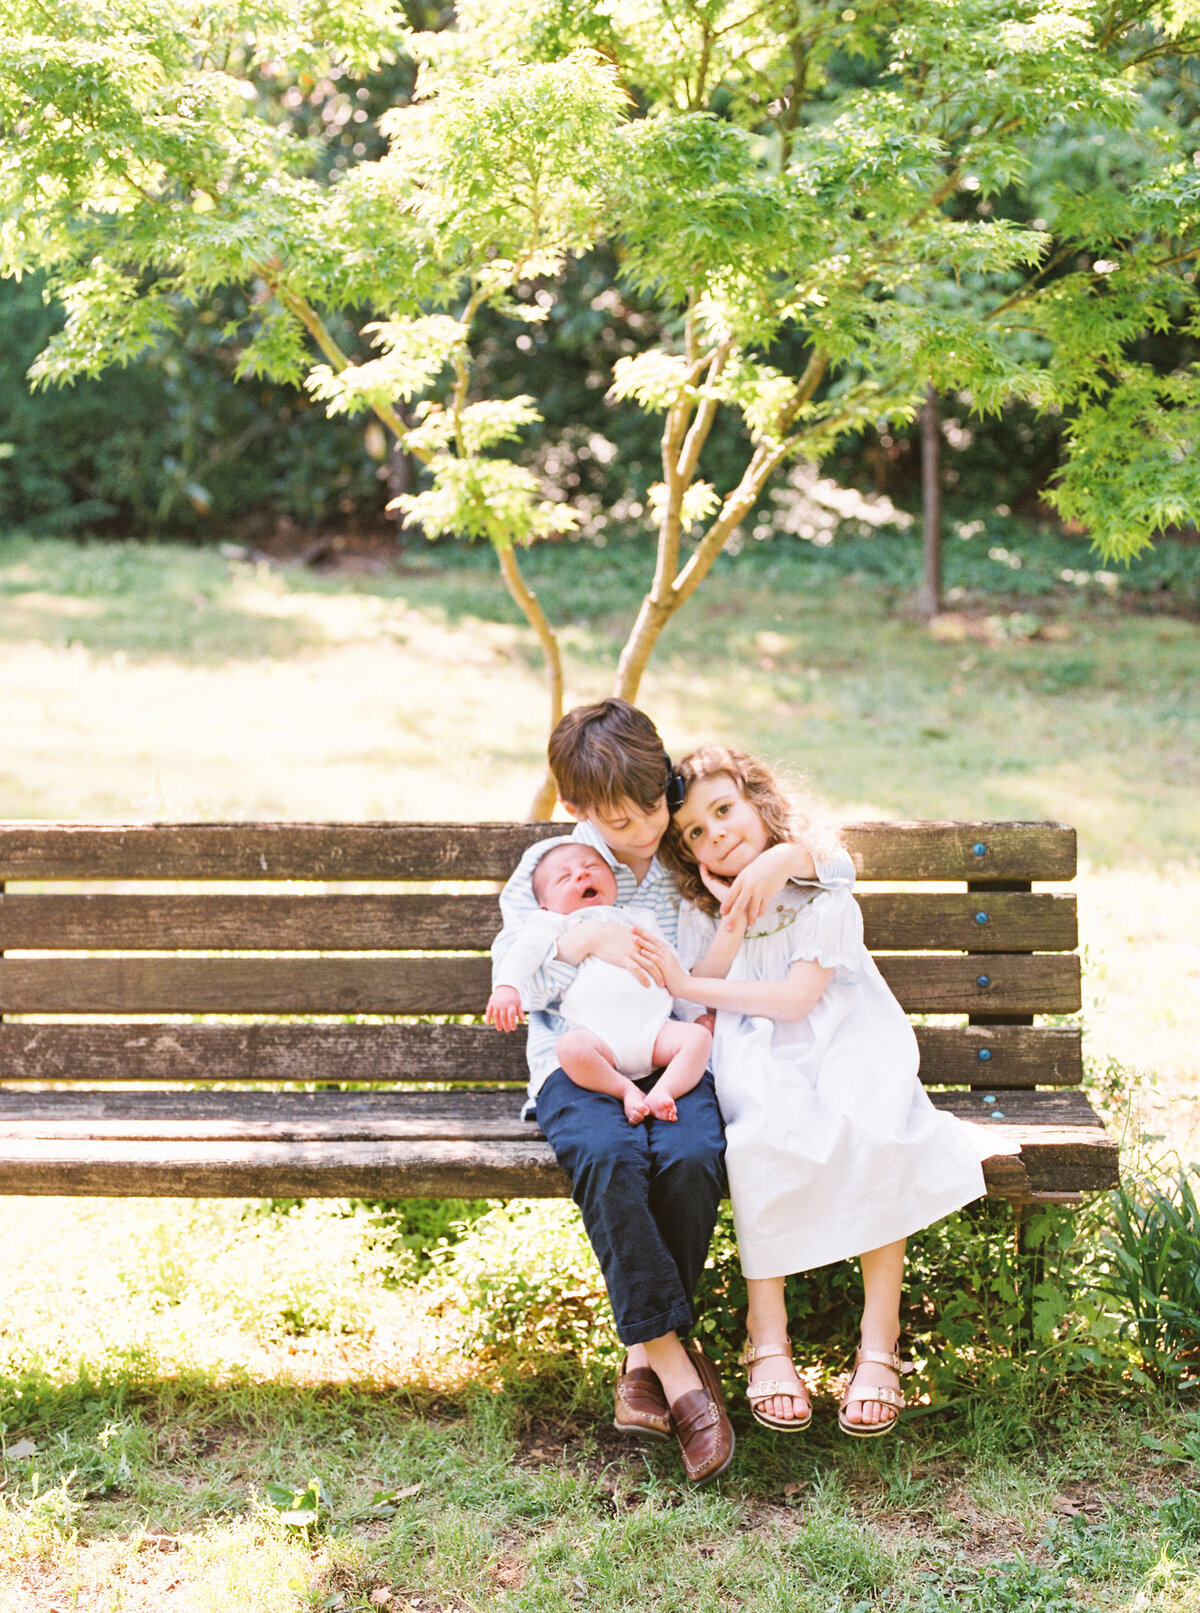 ScoutNewbornSession-LaurenJollyPhotography-15